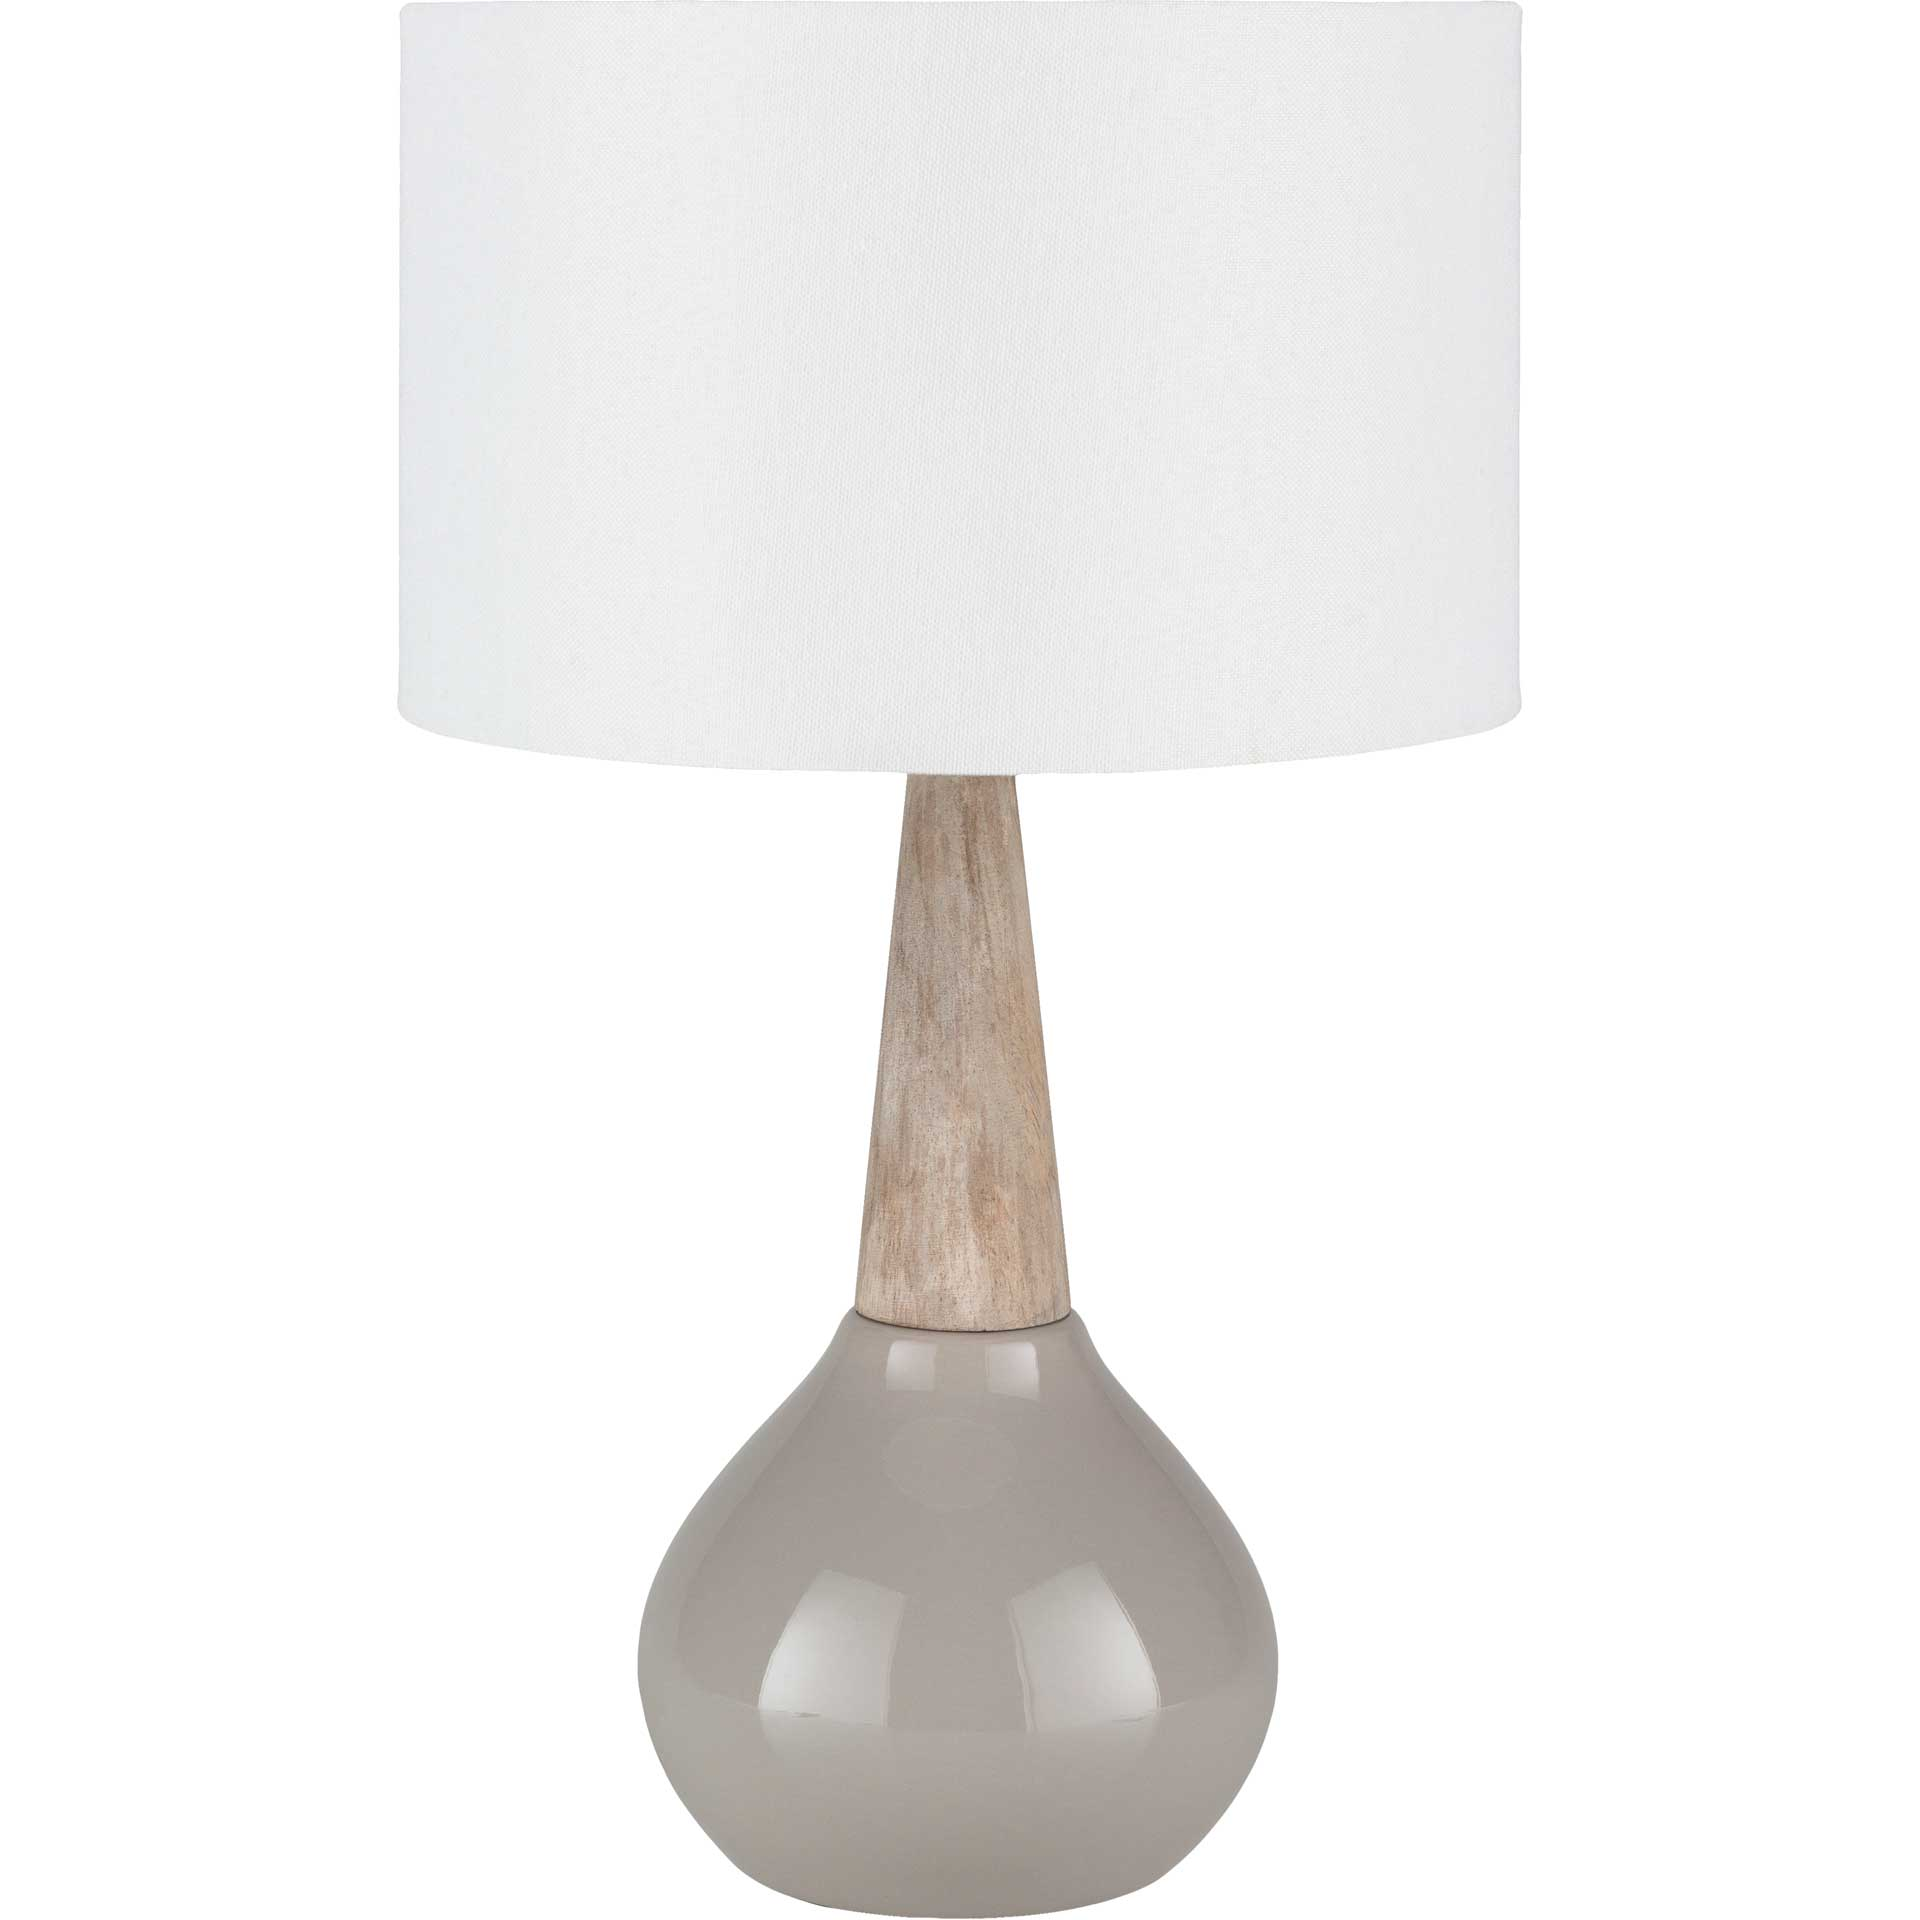 Keaton Table Lamp Medium Gray/White